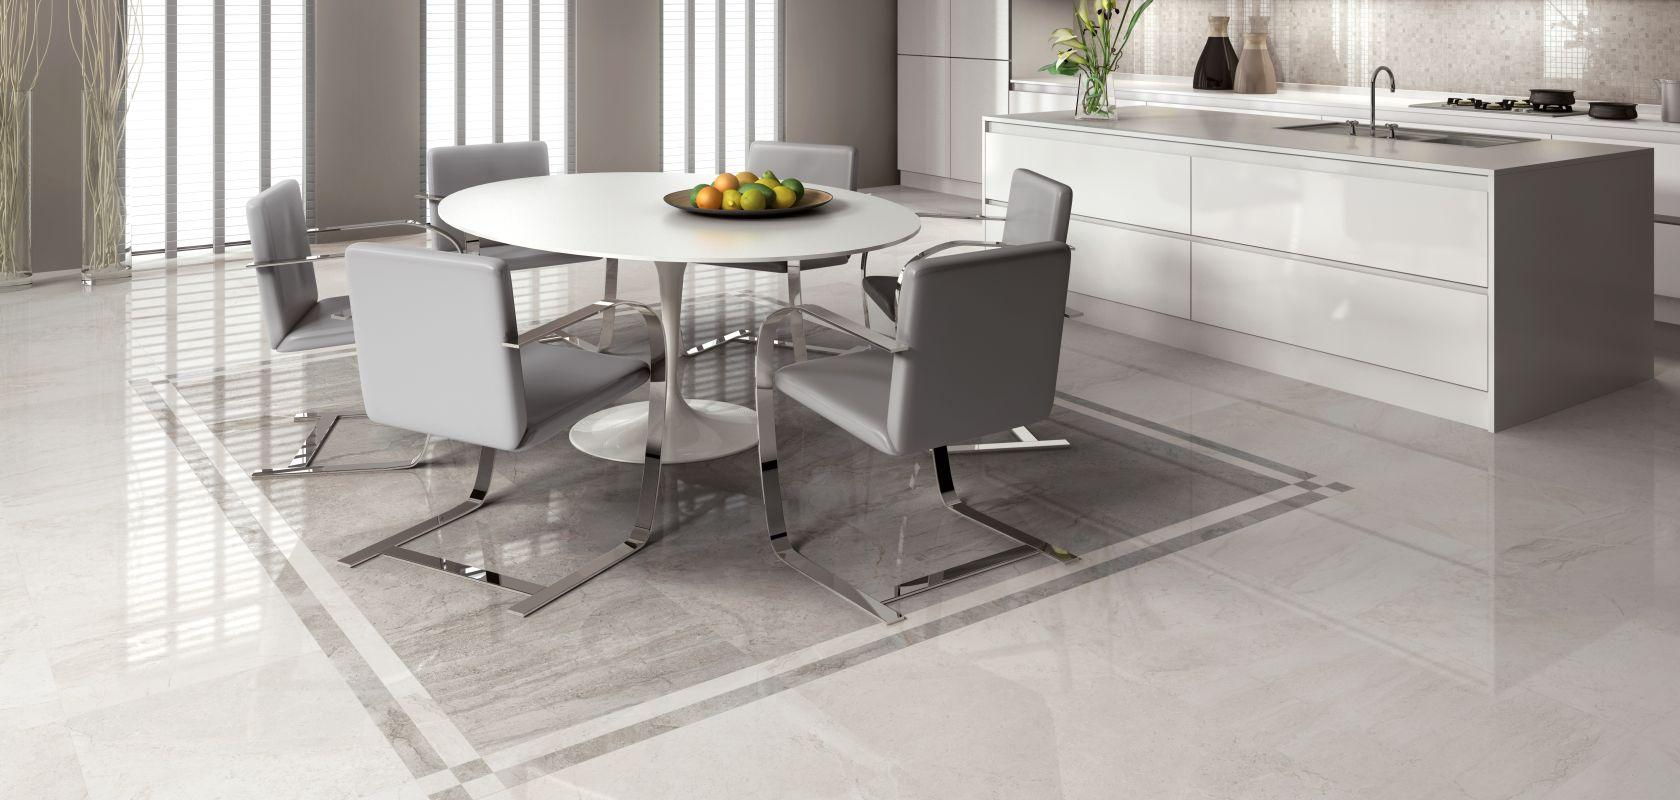 Polish porcelain floor lycos ceramic in rajkot india polish porcelain floor tiles from morbi rajkot gujarat india porcelain tiles are usually made from porcelain doublecrazyfo Choice Image